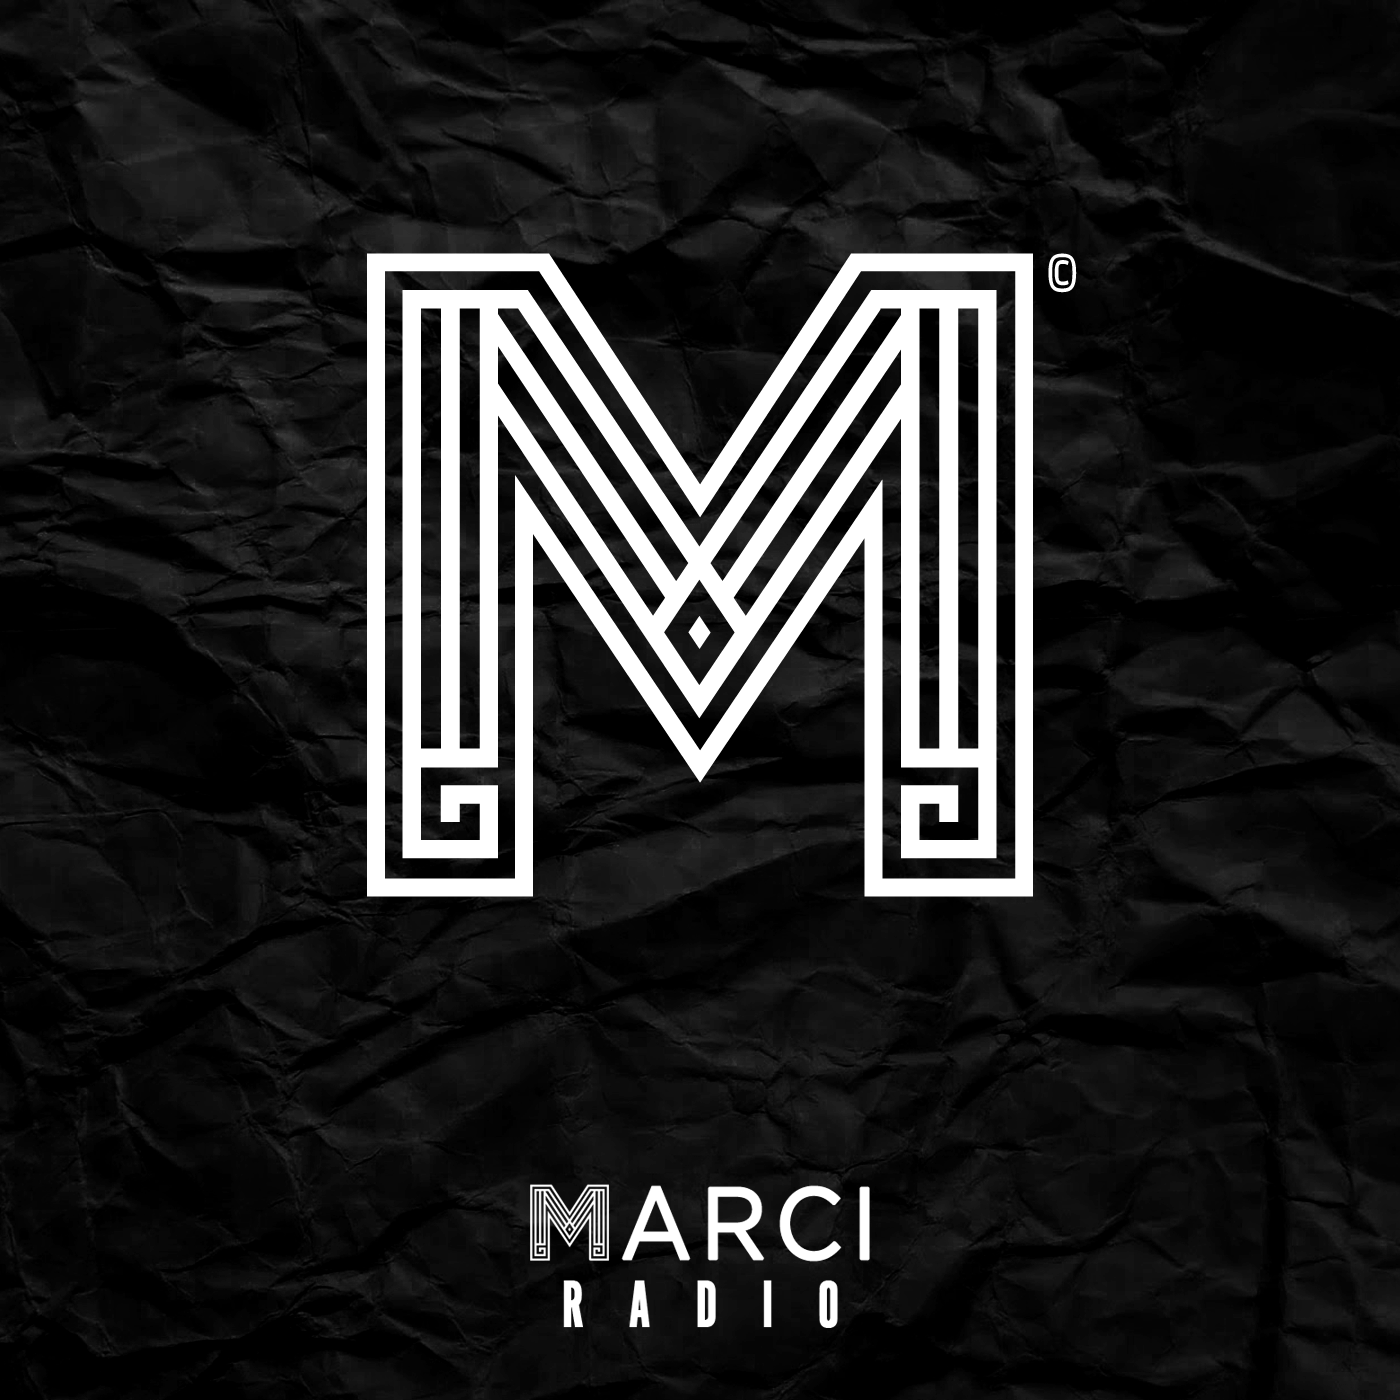 MARCIRADIO Episodes